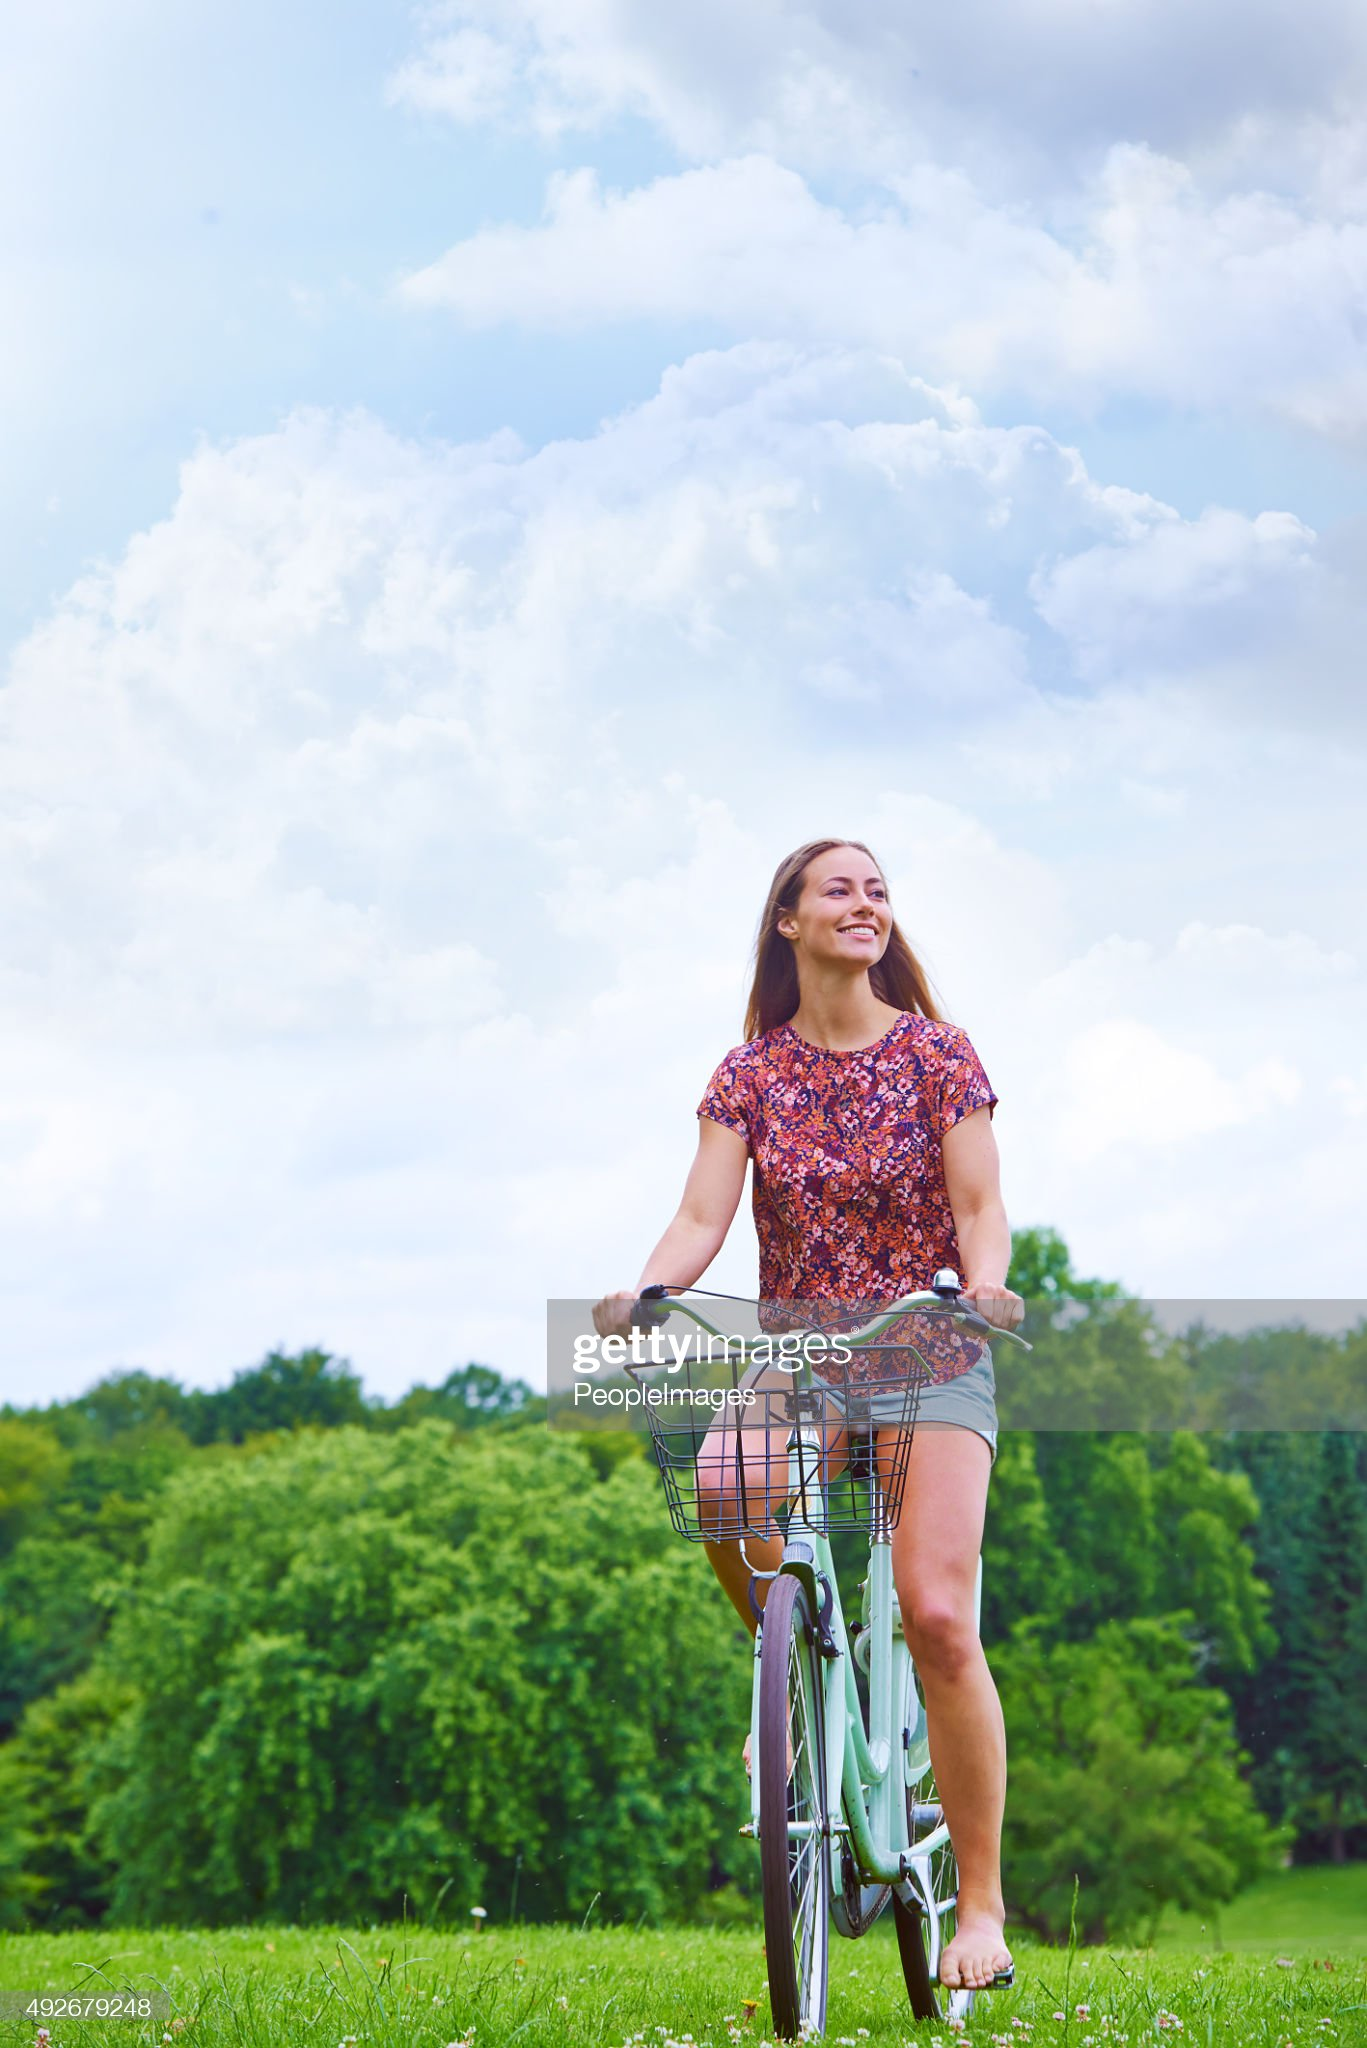 https://media.gettyimages.com/photos/her-bike-is-pedaled-by-the-desire-for-adventure-picture-id492679248?s=2048x2048